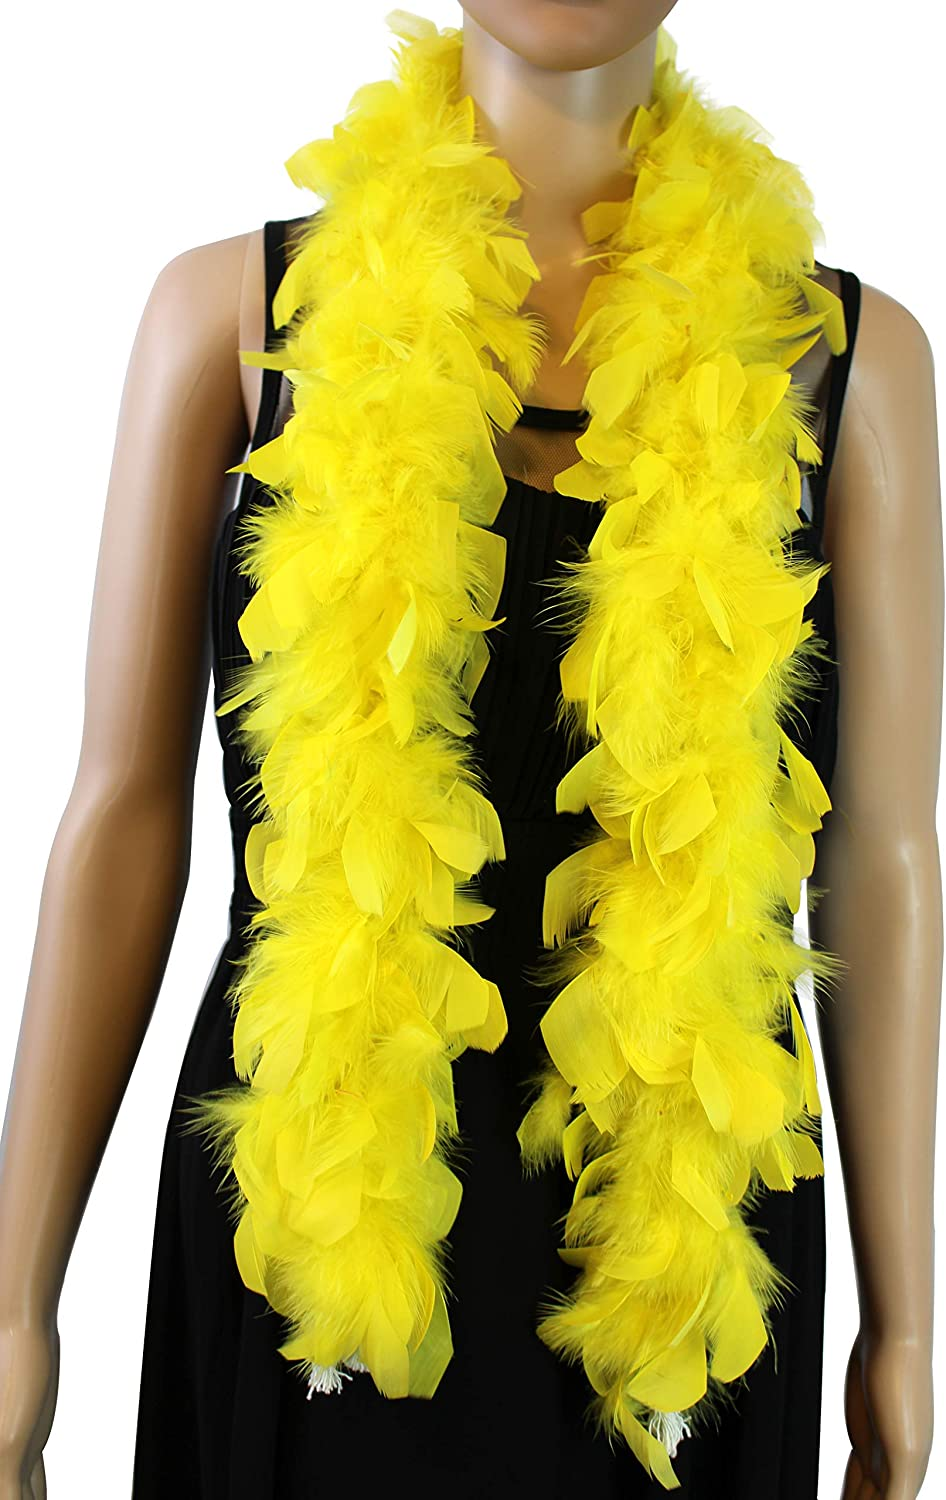 Decoration Christmas Tree 4 Feet Long Chandelle Feather Boa Great for Party Halloween Costume Wedding Over 10 Color 25 Gram Yellow